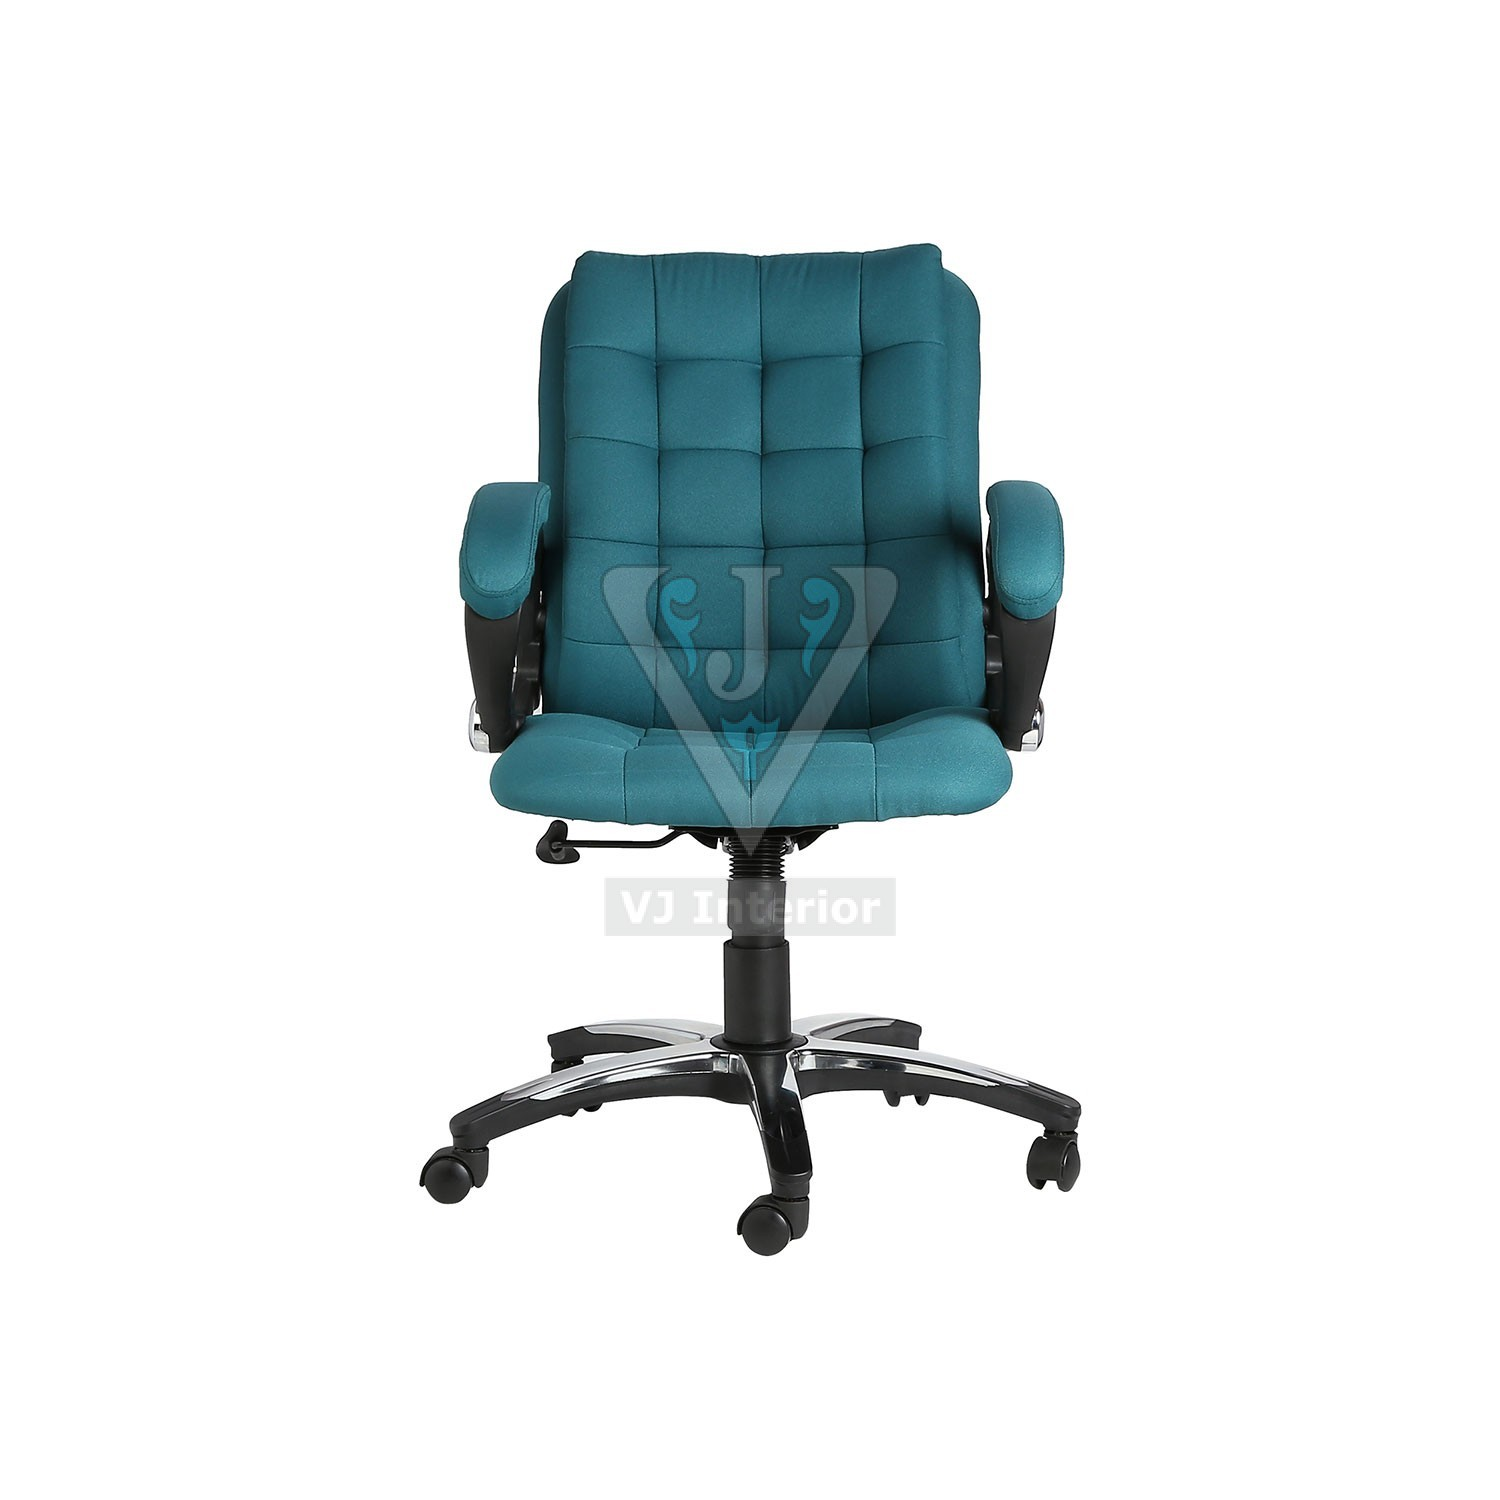 Outstanding The Brillo Executive Mb Ocean Green Squirreltailoven Fun Painted Chair Ideas Images Squirreltailovenorg